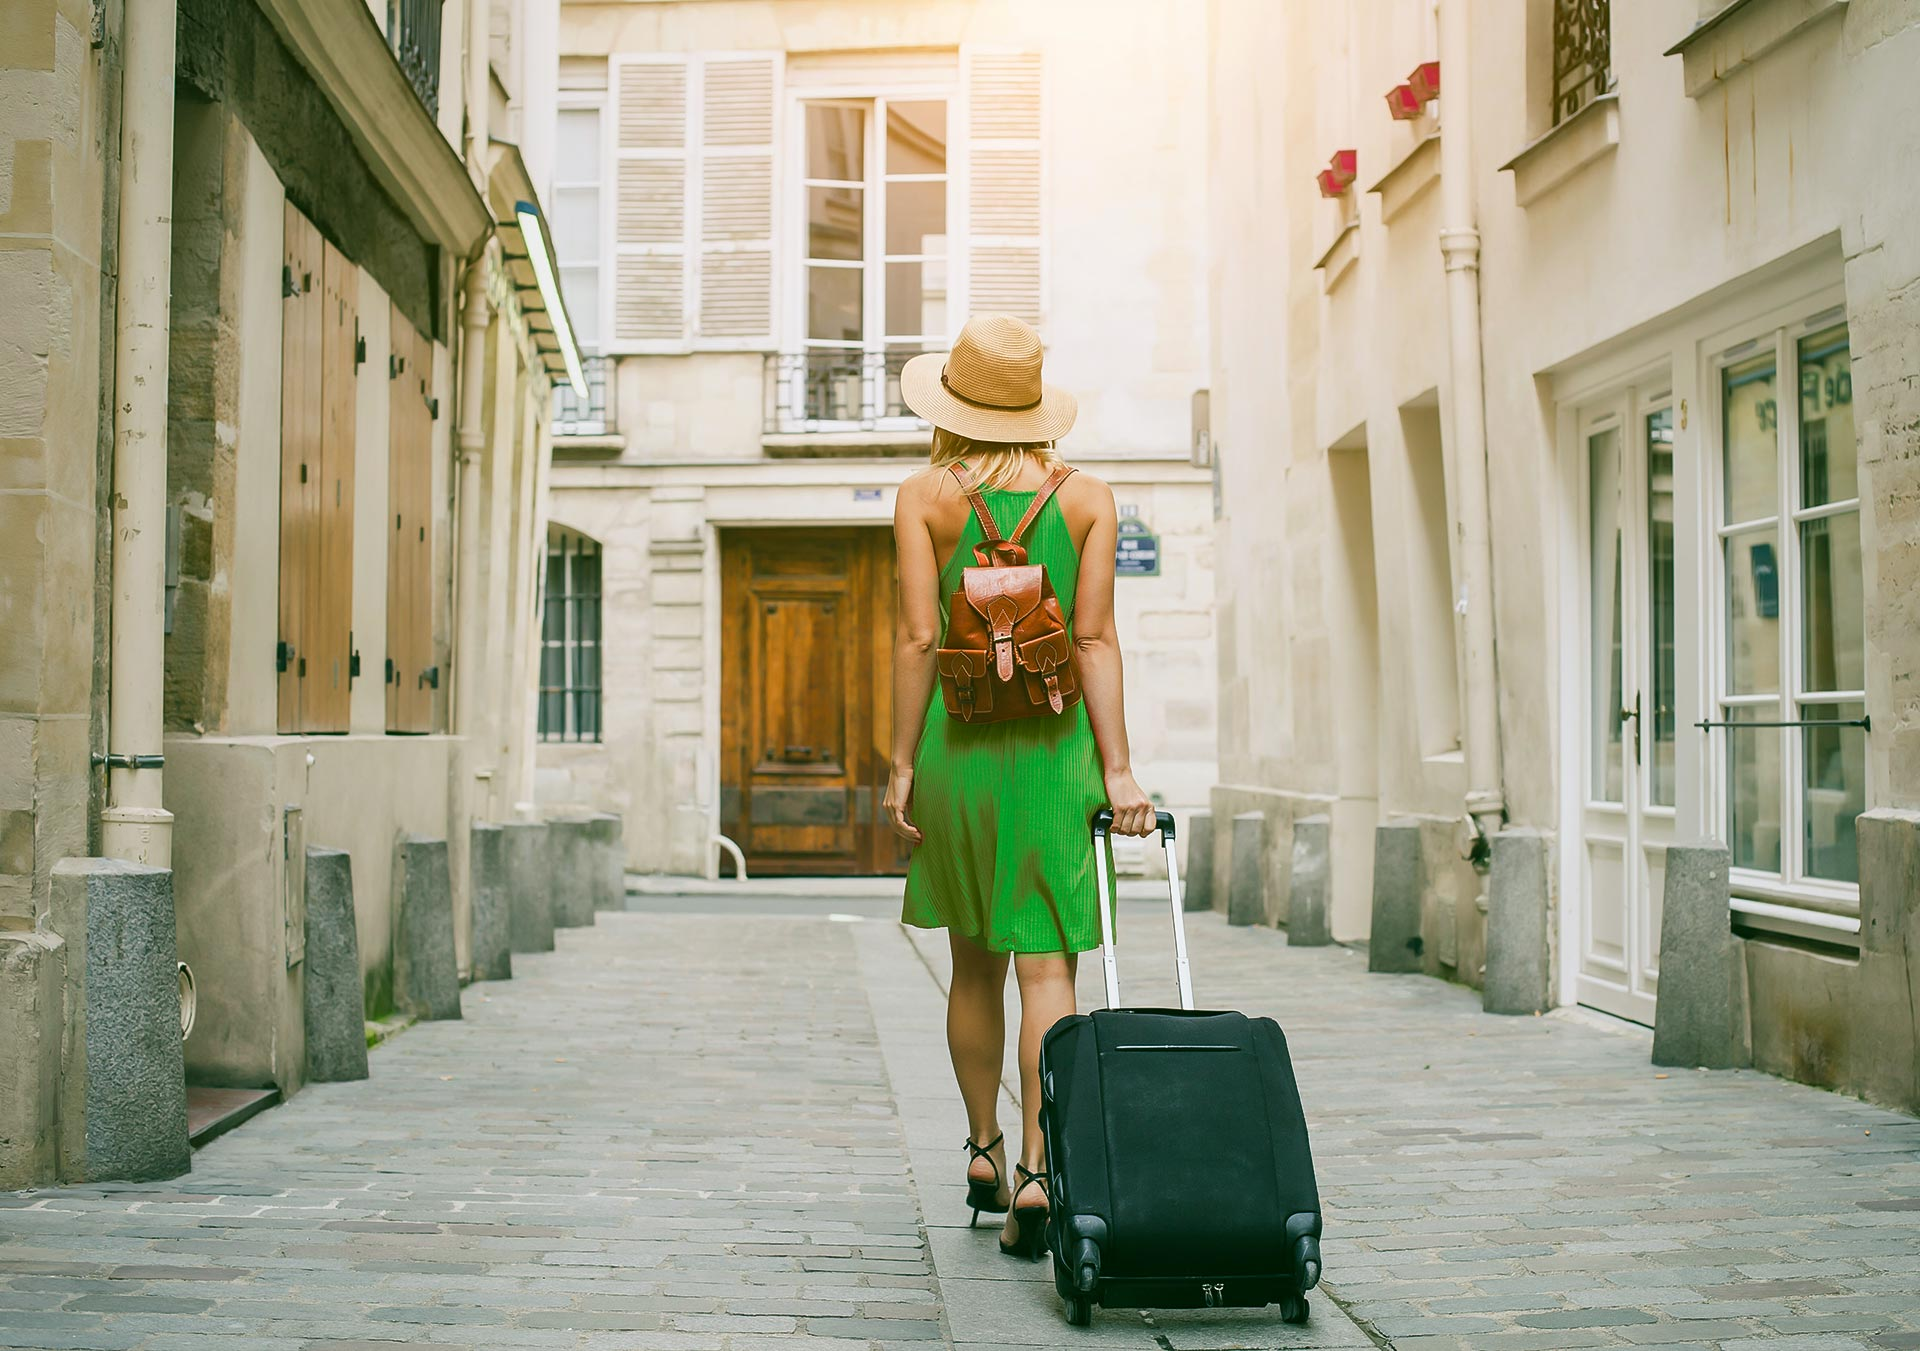 A young lady in a green dress walking down a street in Europe, trailing her suitcase behind her